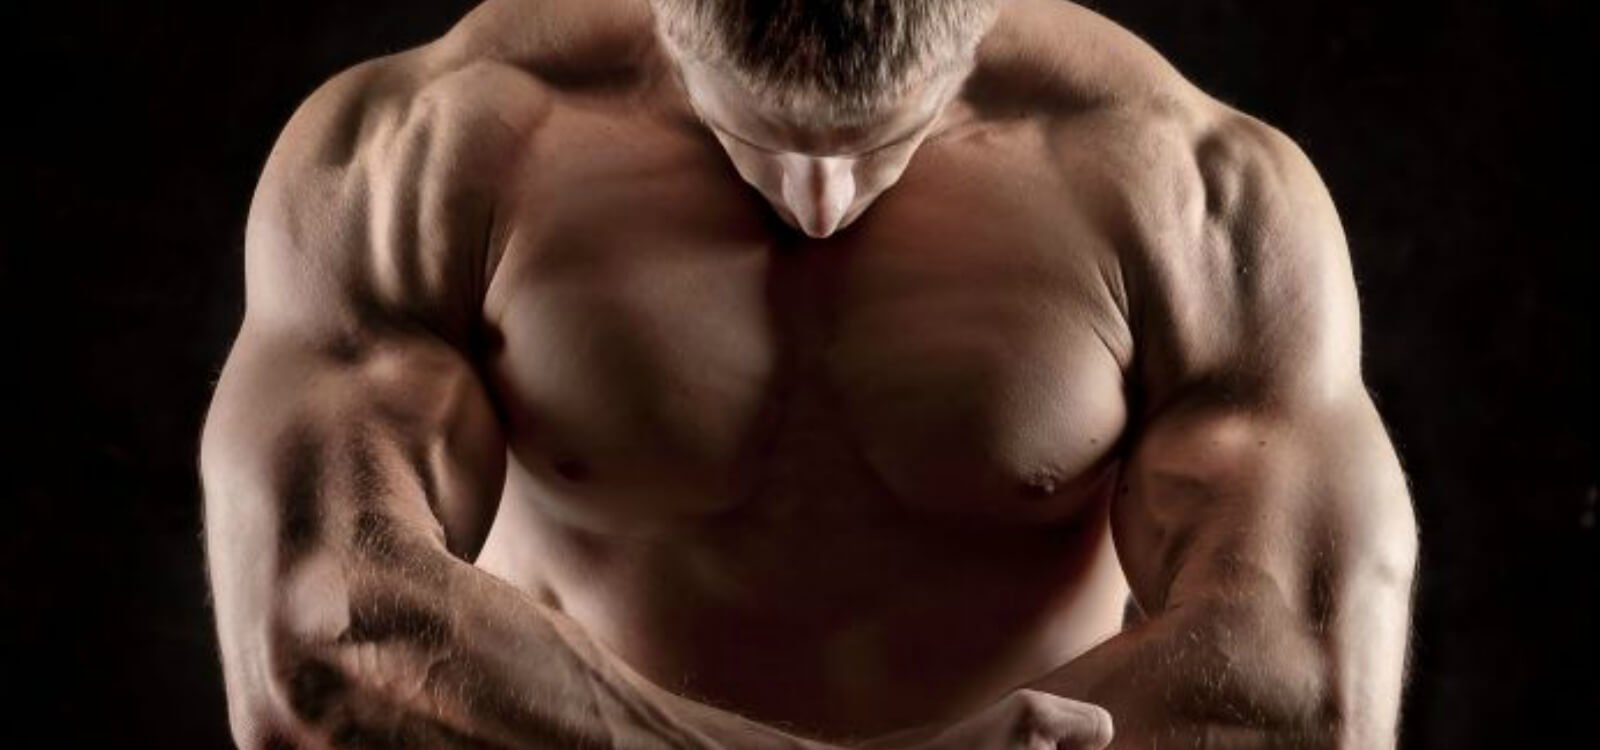 painkillers affect muscle growth